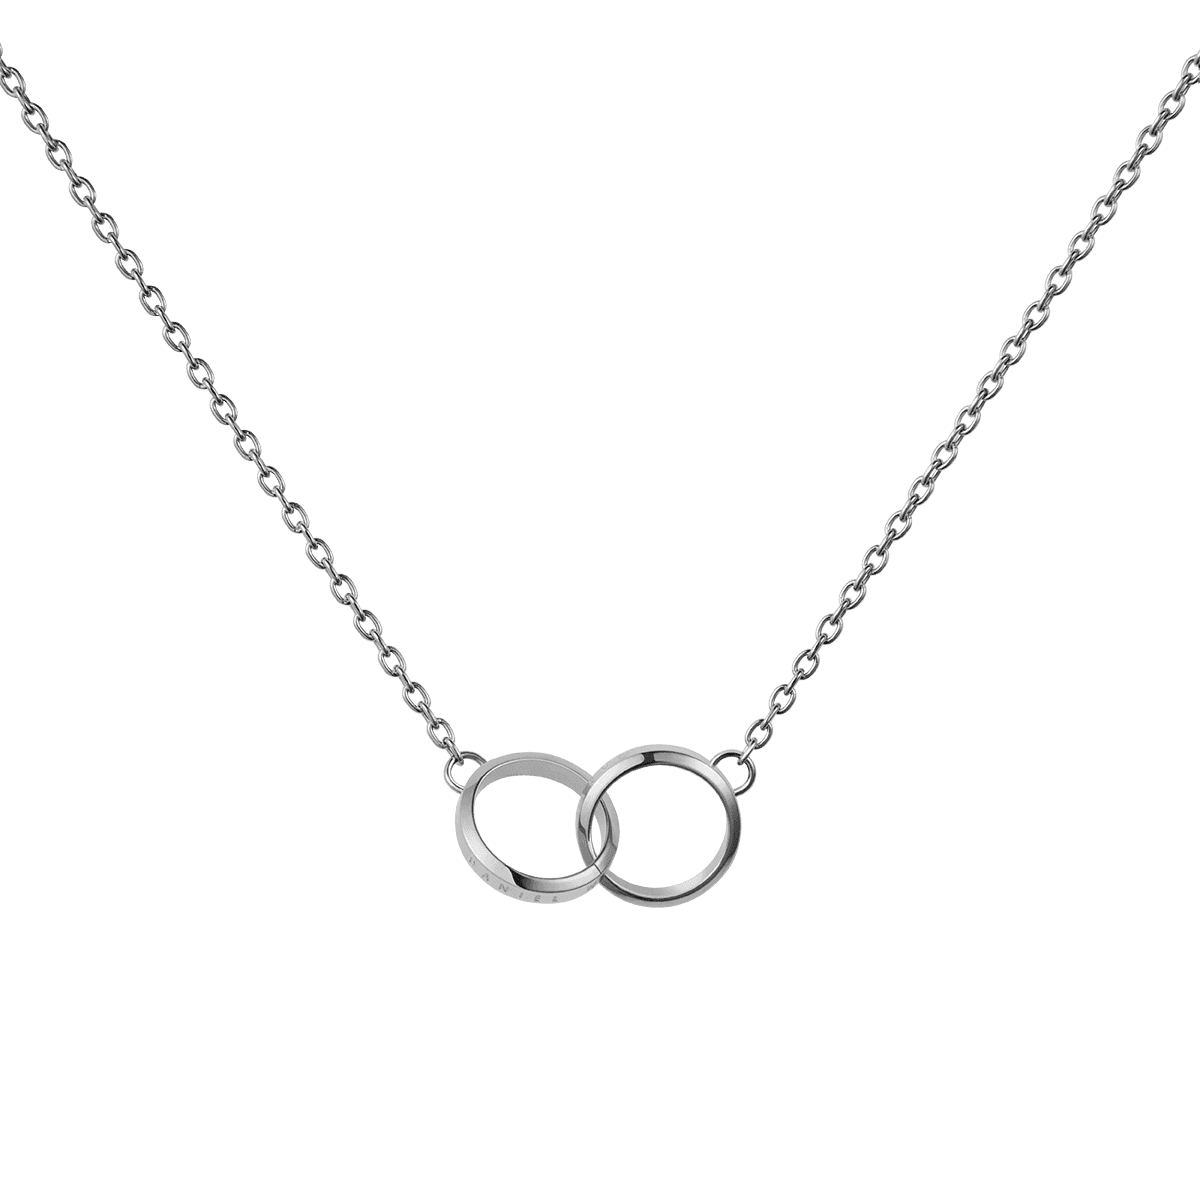 Elan Unity Necklace Silver One Size